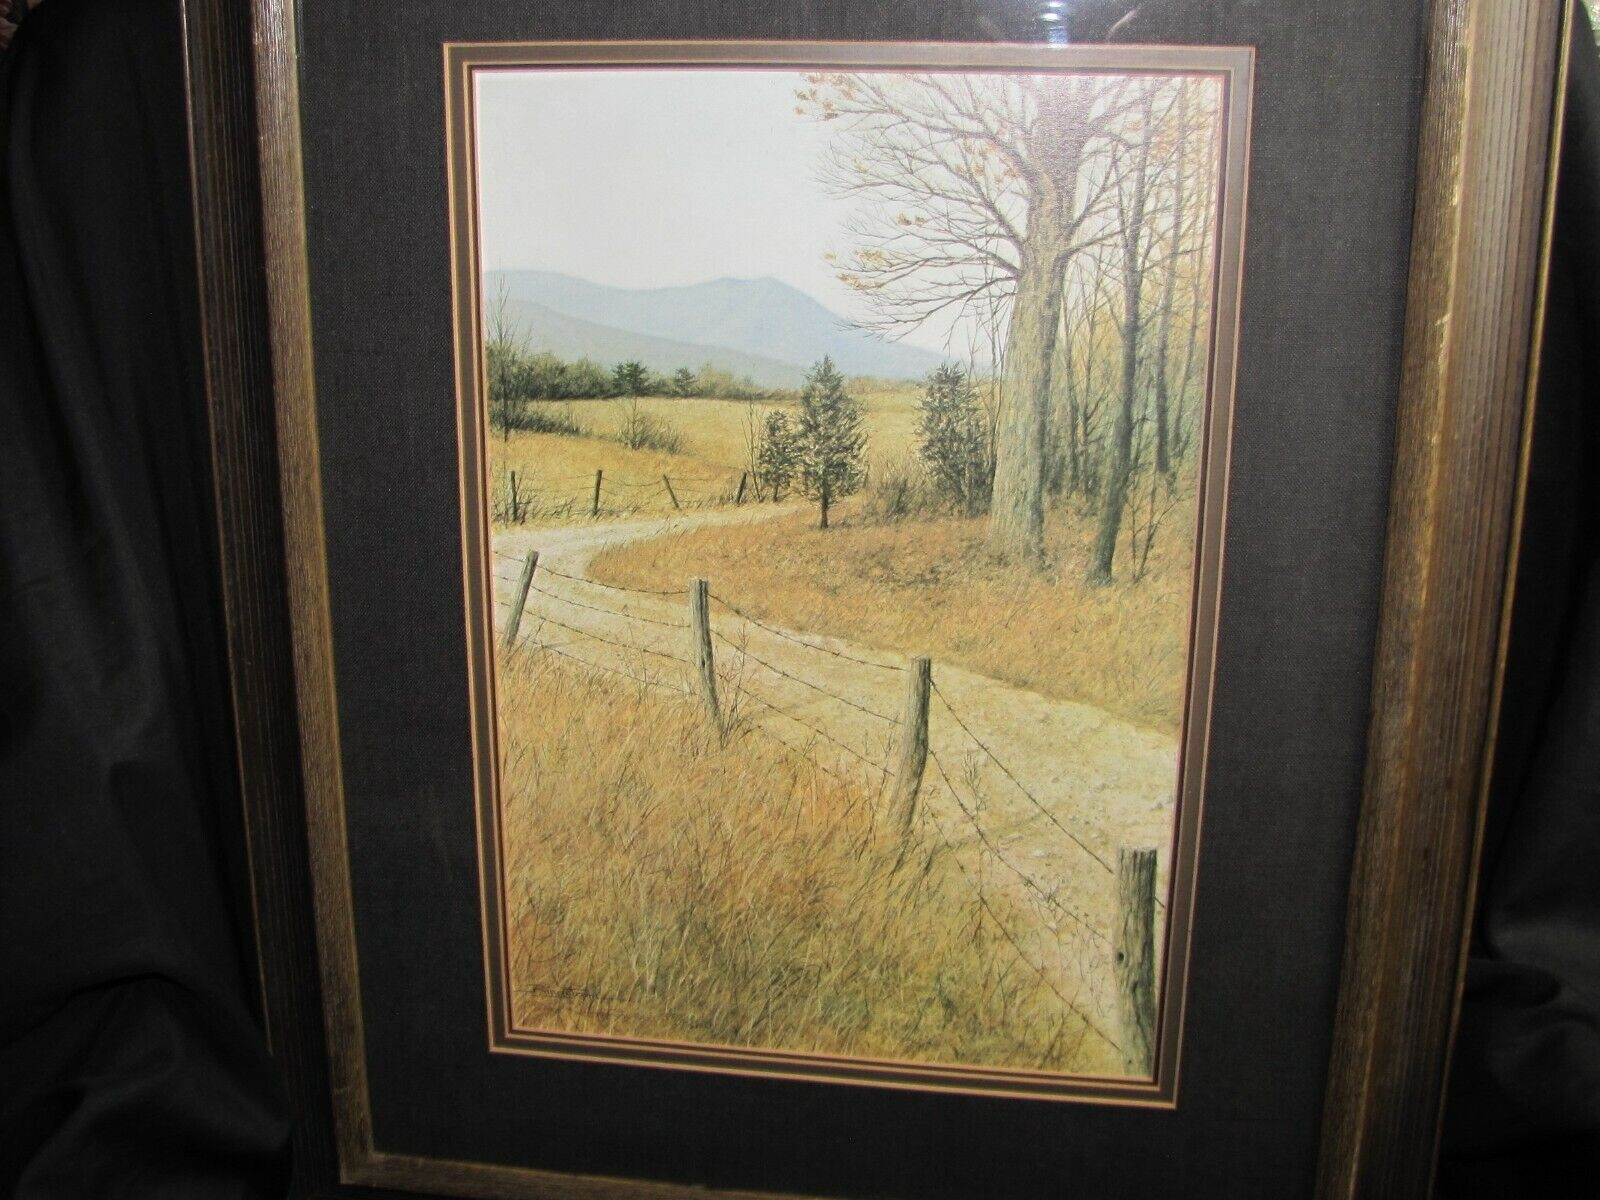 DON RINGSTROM COUNTRY ROADS SIGNED LIMITED EDITION PRINT - $39.99